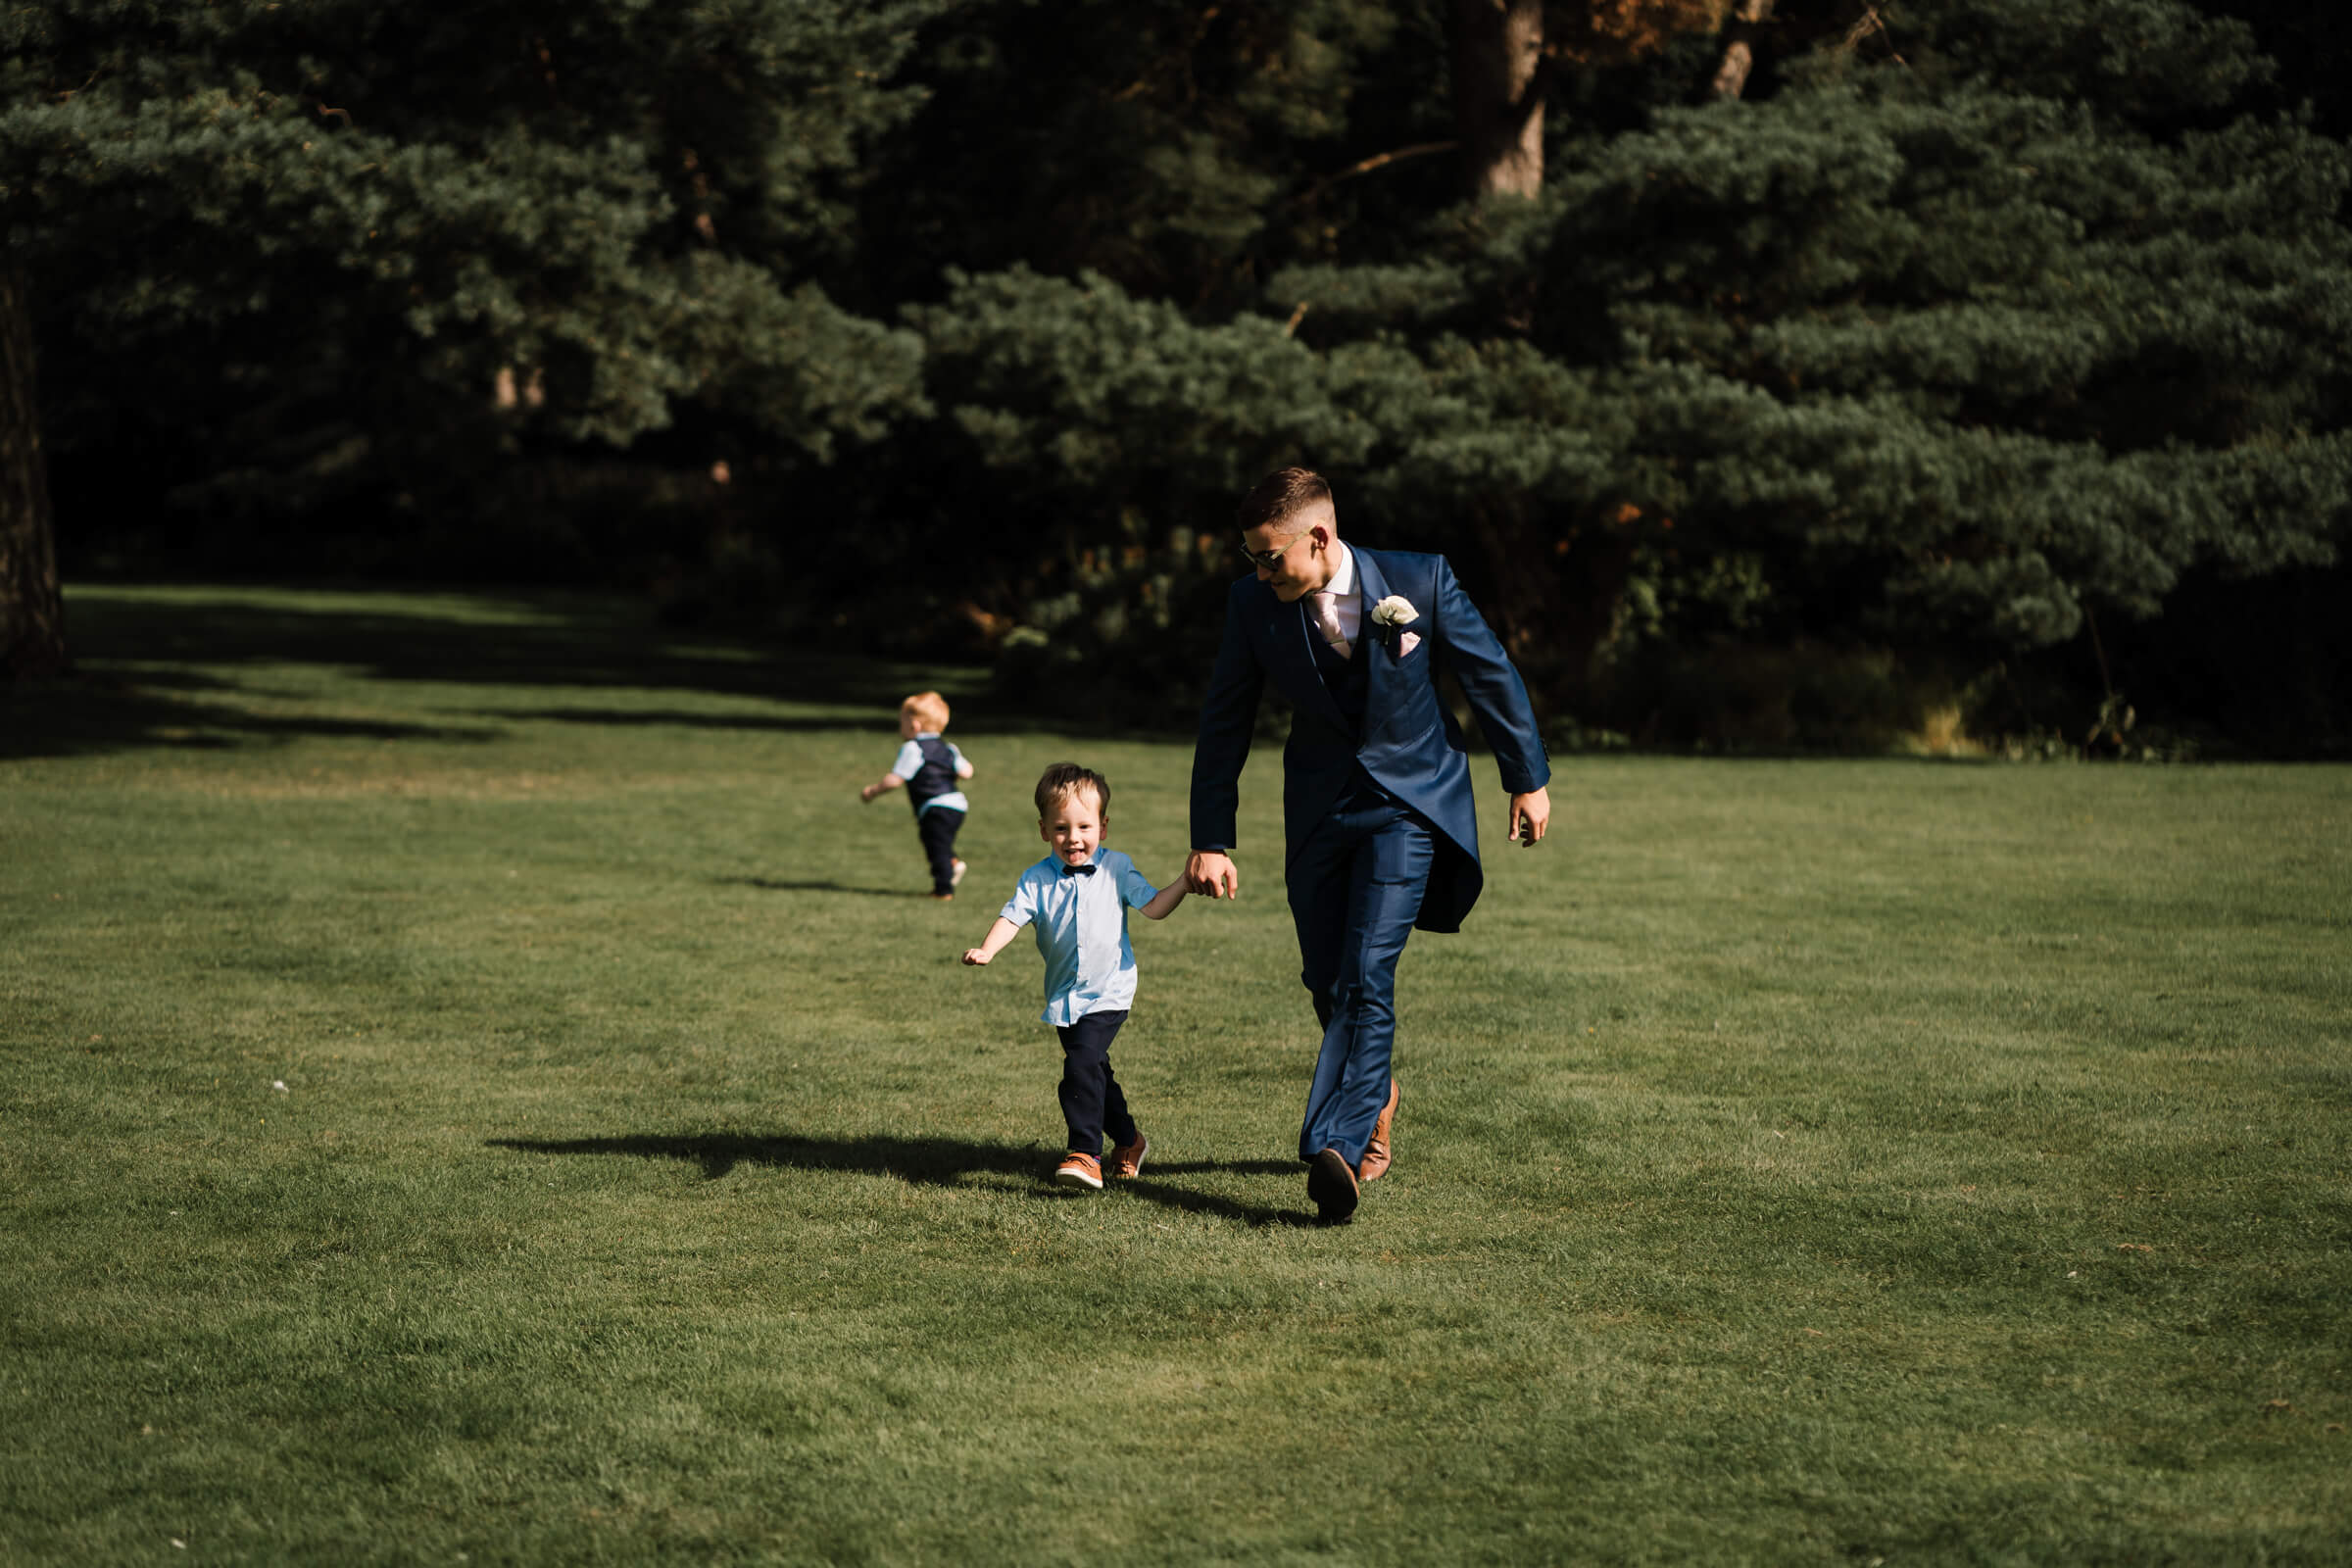 brother of groom running with you boy on lawn